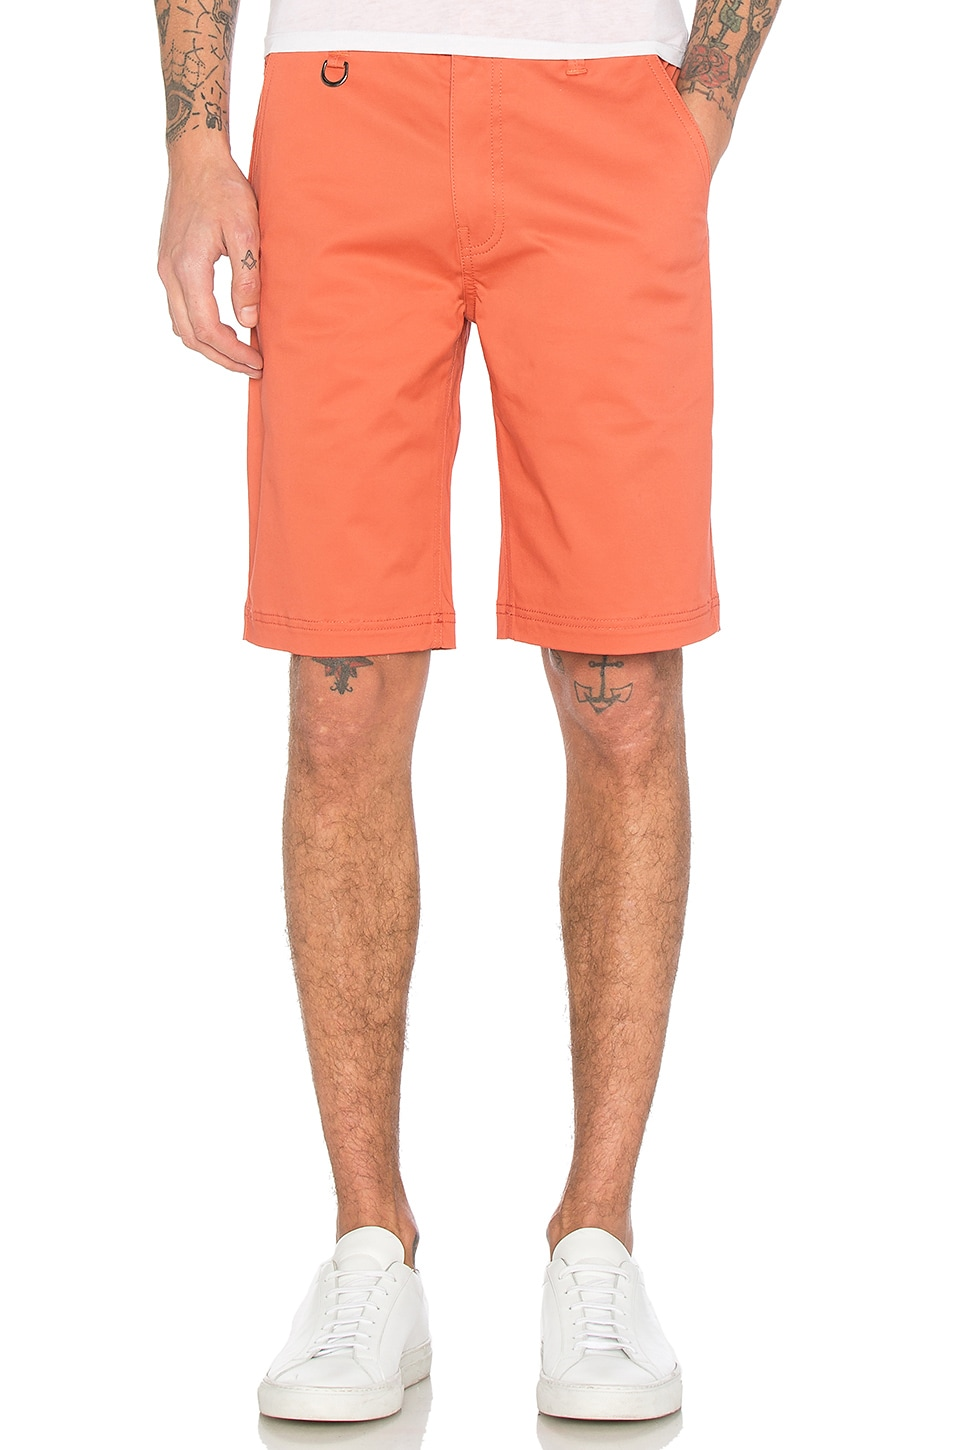 Kamron Shorts by Publish